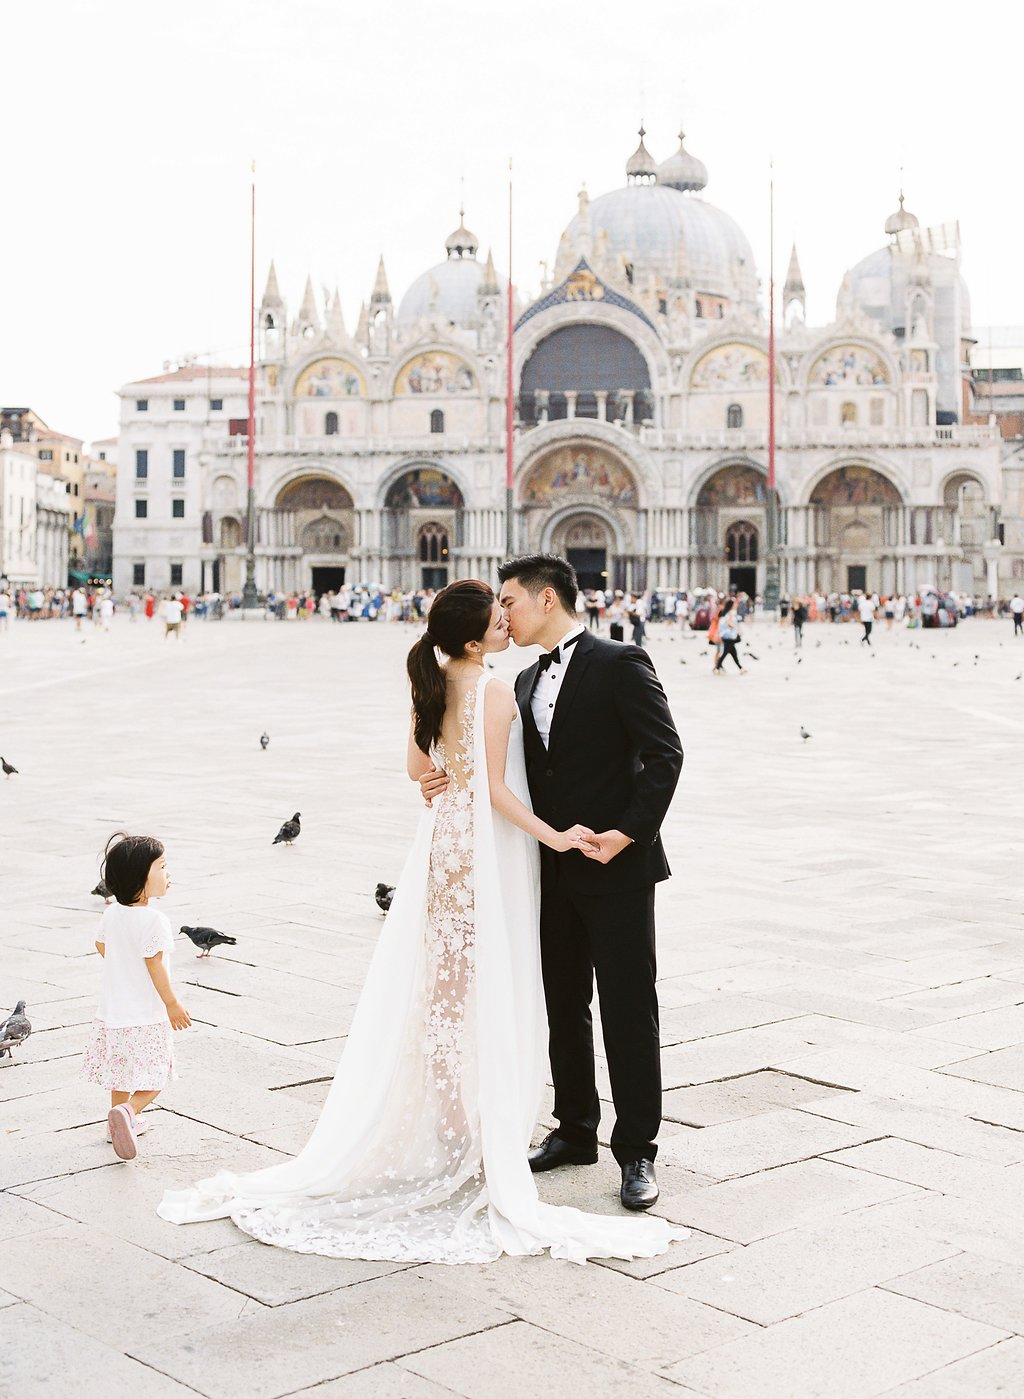 Destination pre-wedding session in Venice Italy | Tanja Kibogo photography film4.jpg